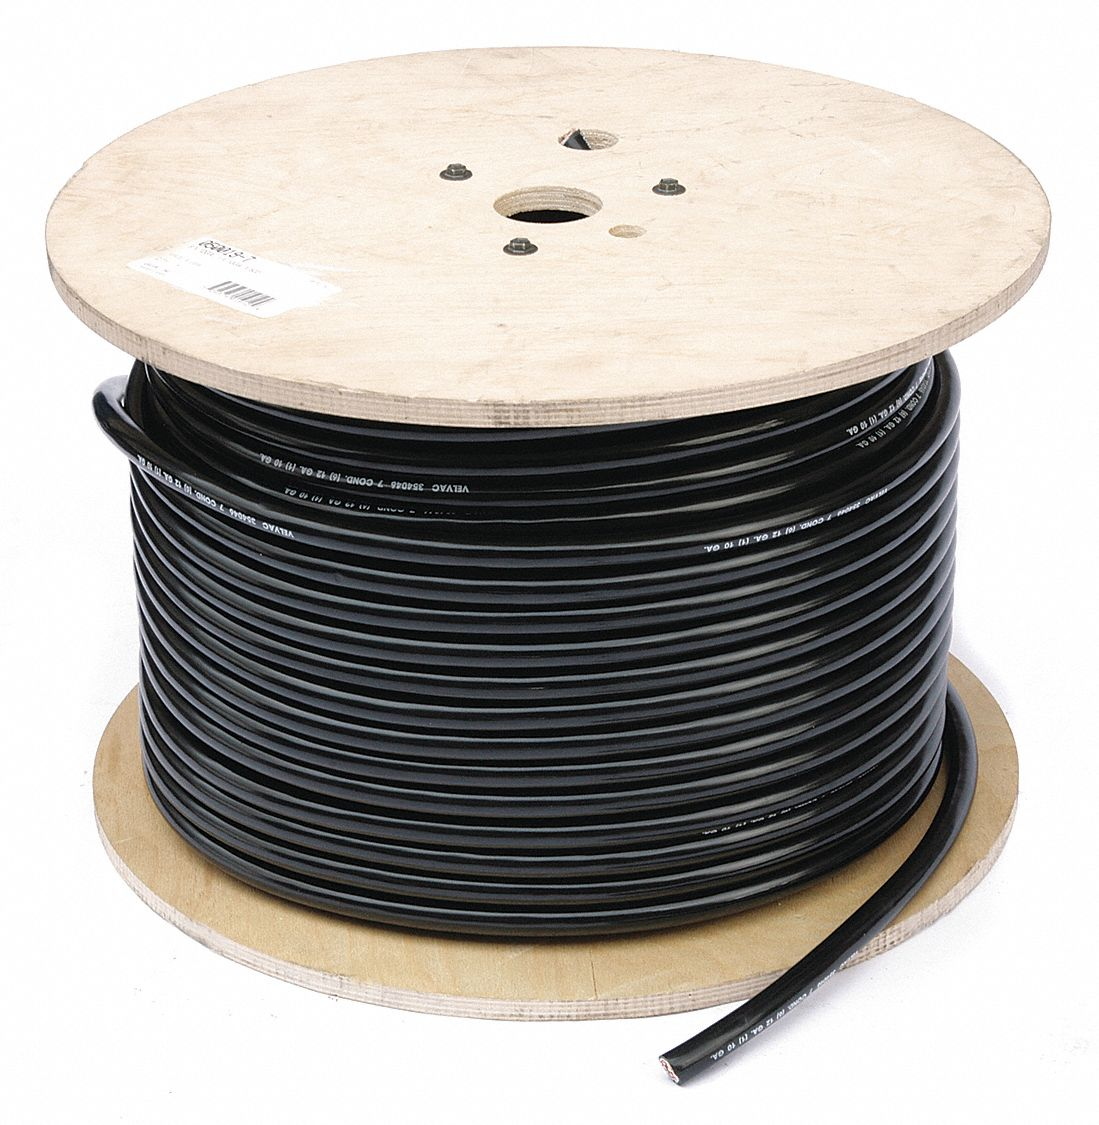 VELVAC 500 ft. PVC Trailer Cable with 7 Conductor(s), (6) 12 AWG, (1 ...